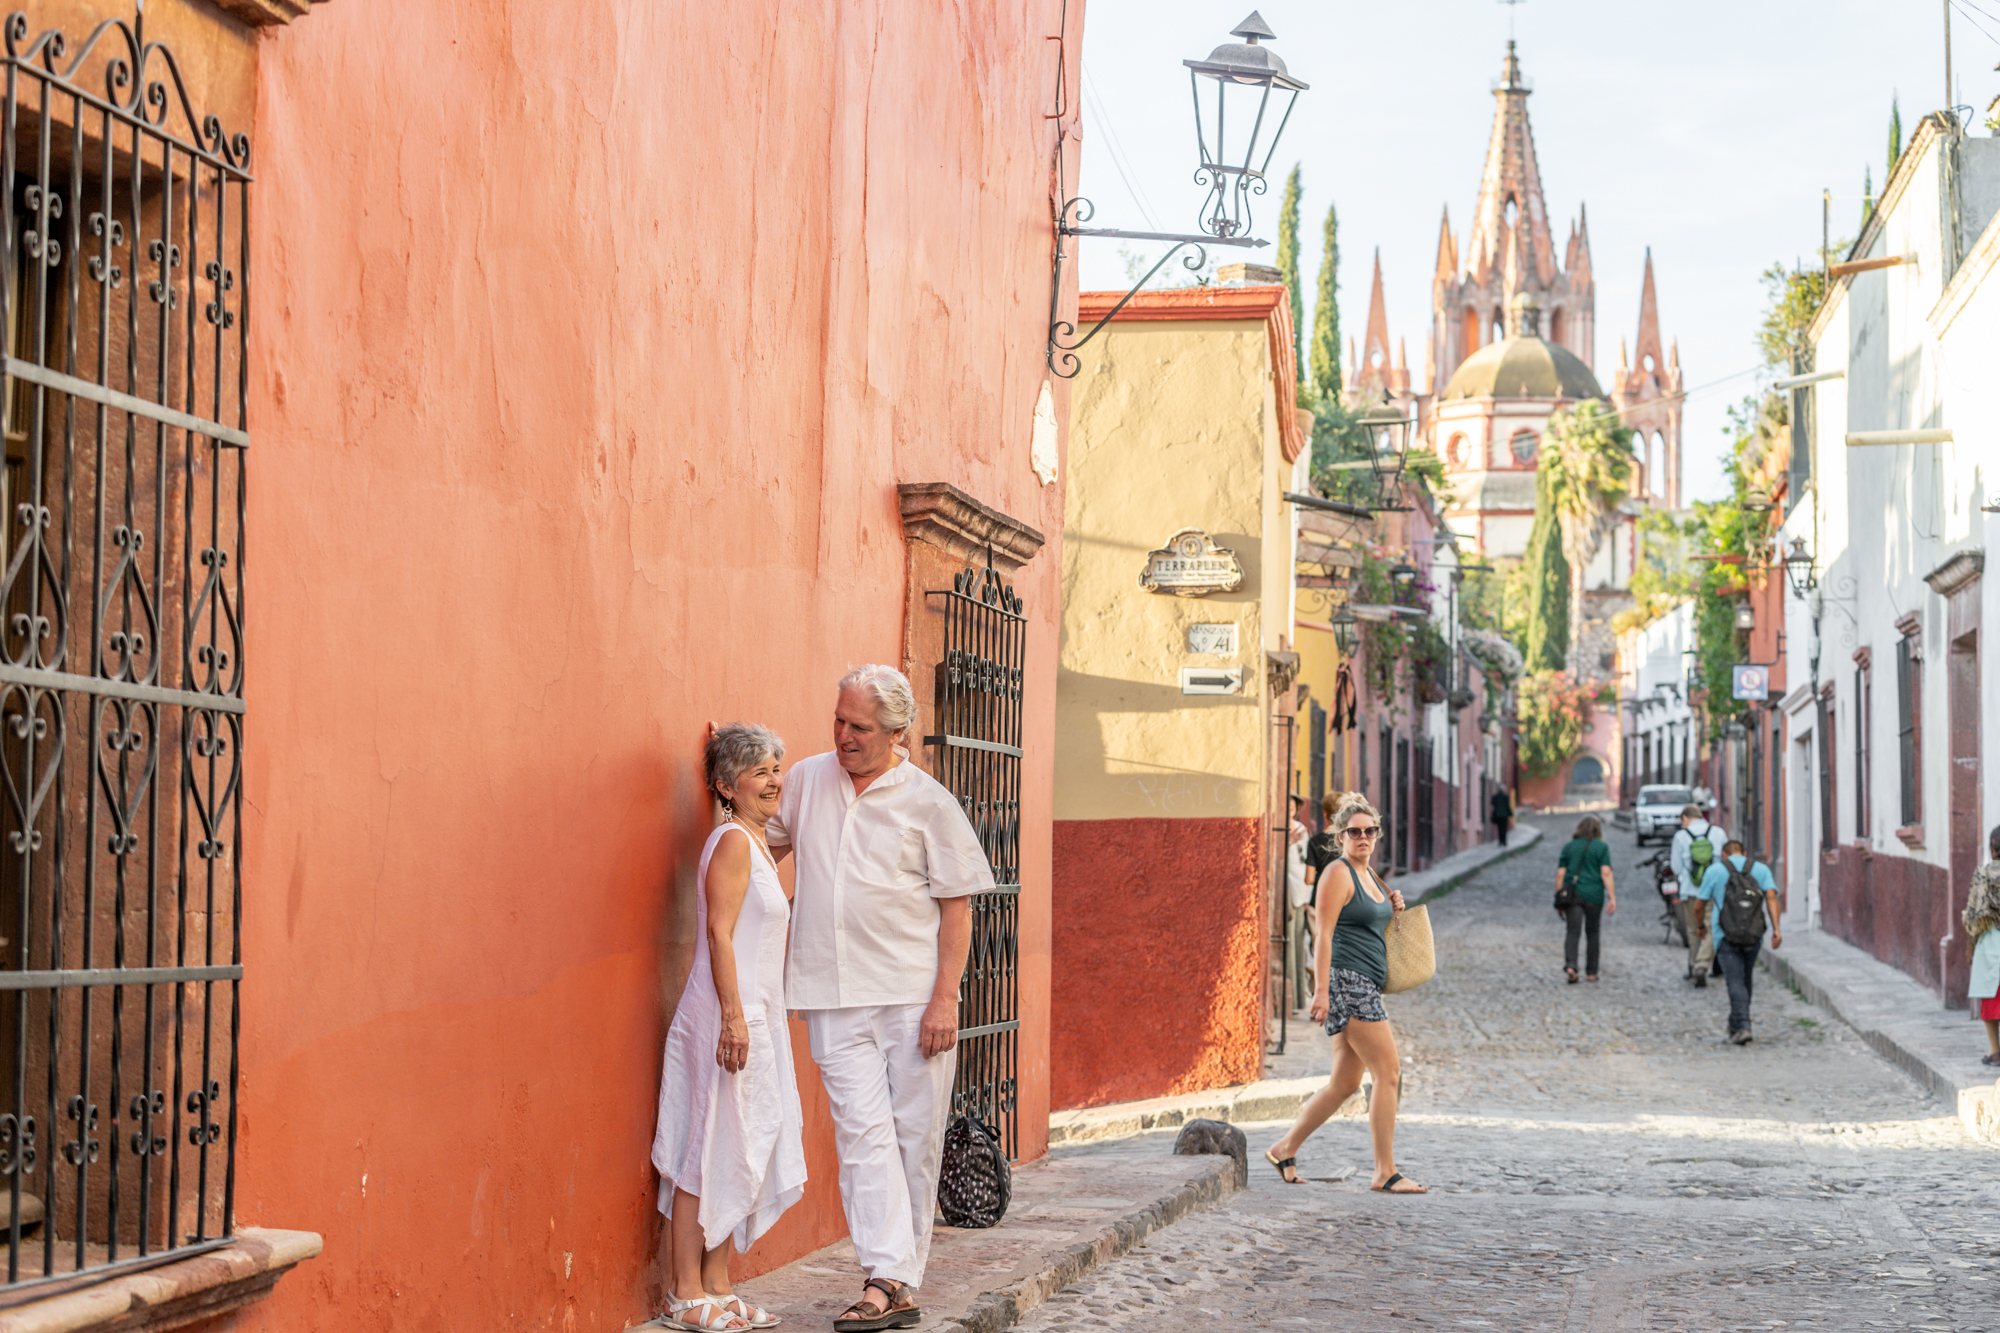 Photoshoot session in San Miguel de Allende with Suzanne and Leo-53.jpg